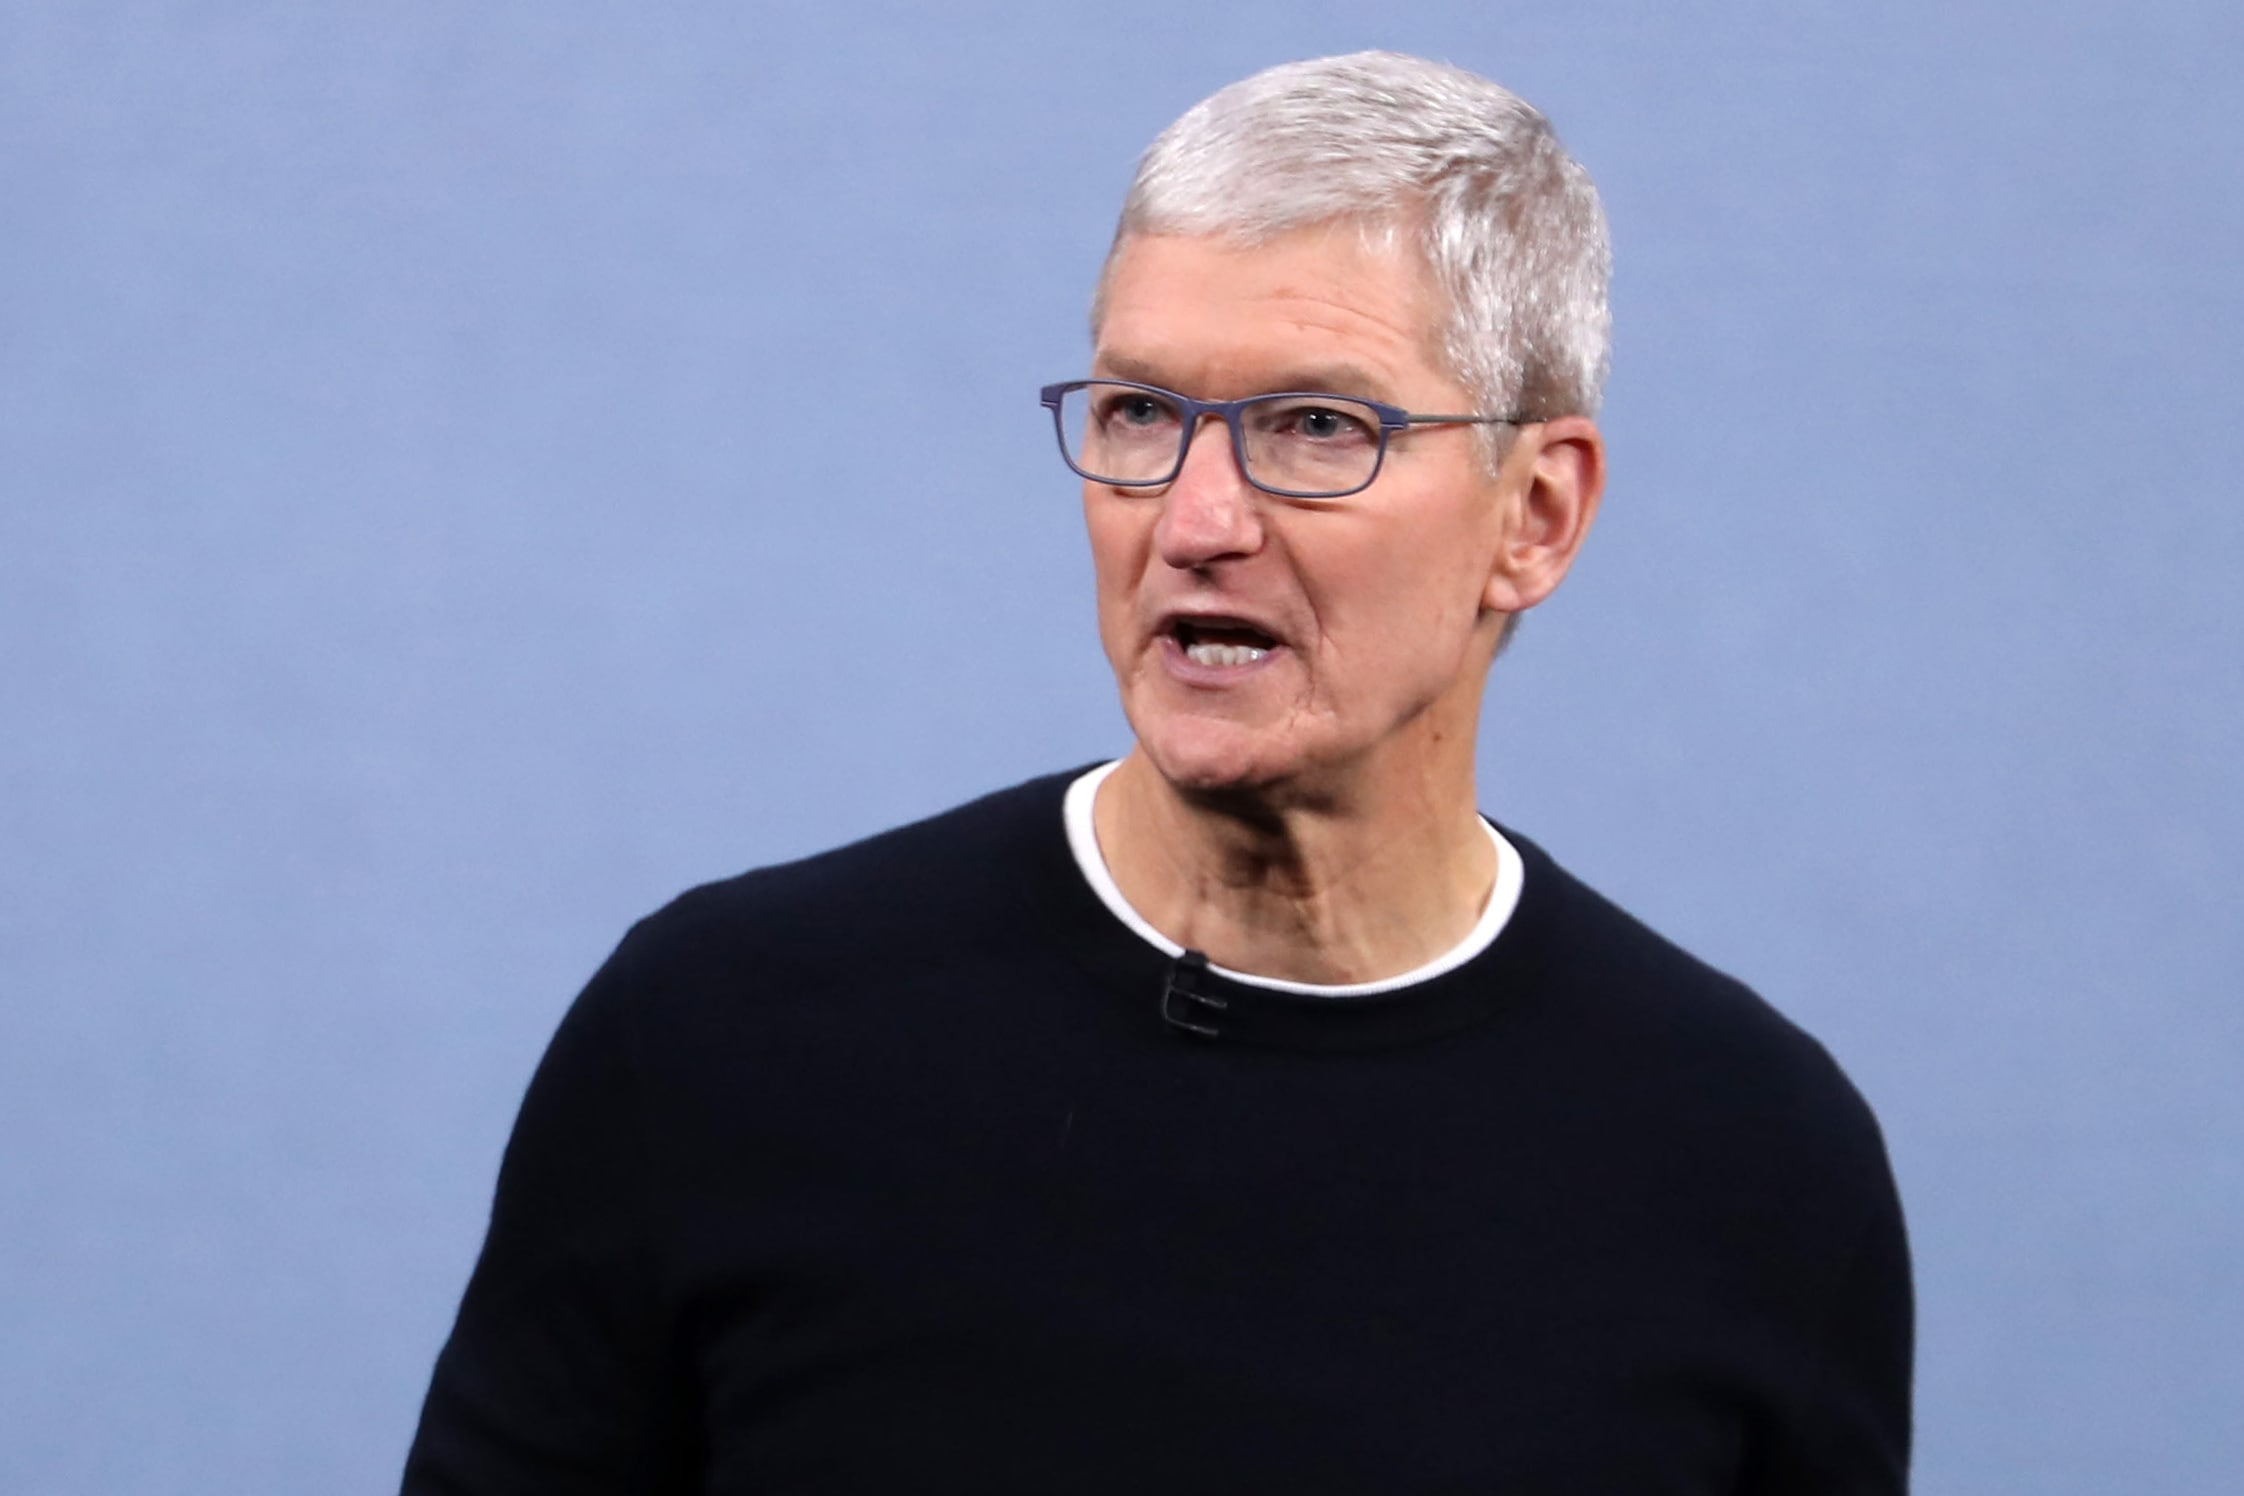 apple-has-quietly-dropped-22%-from-its-peak,-giving-up-$500-billion-in-market-cap